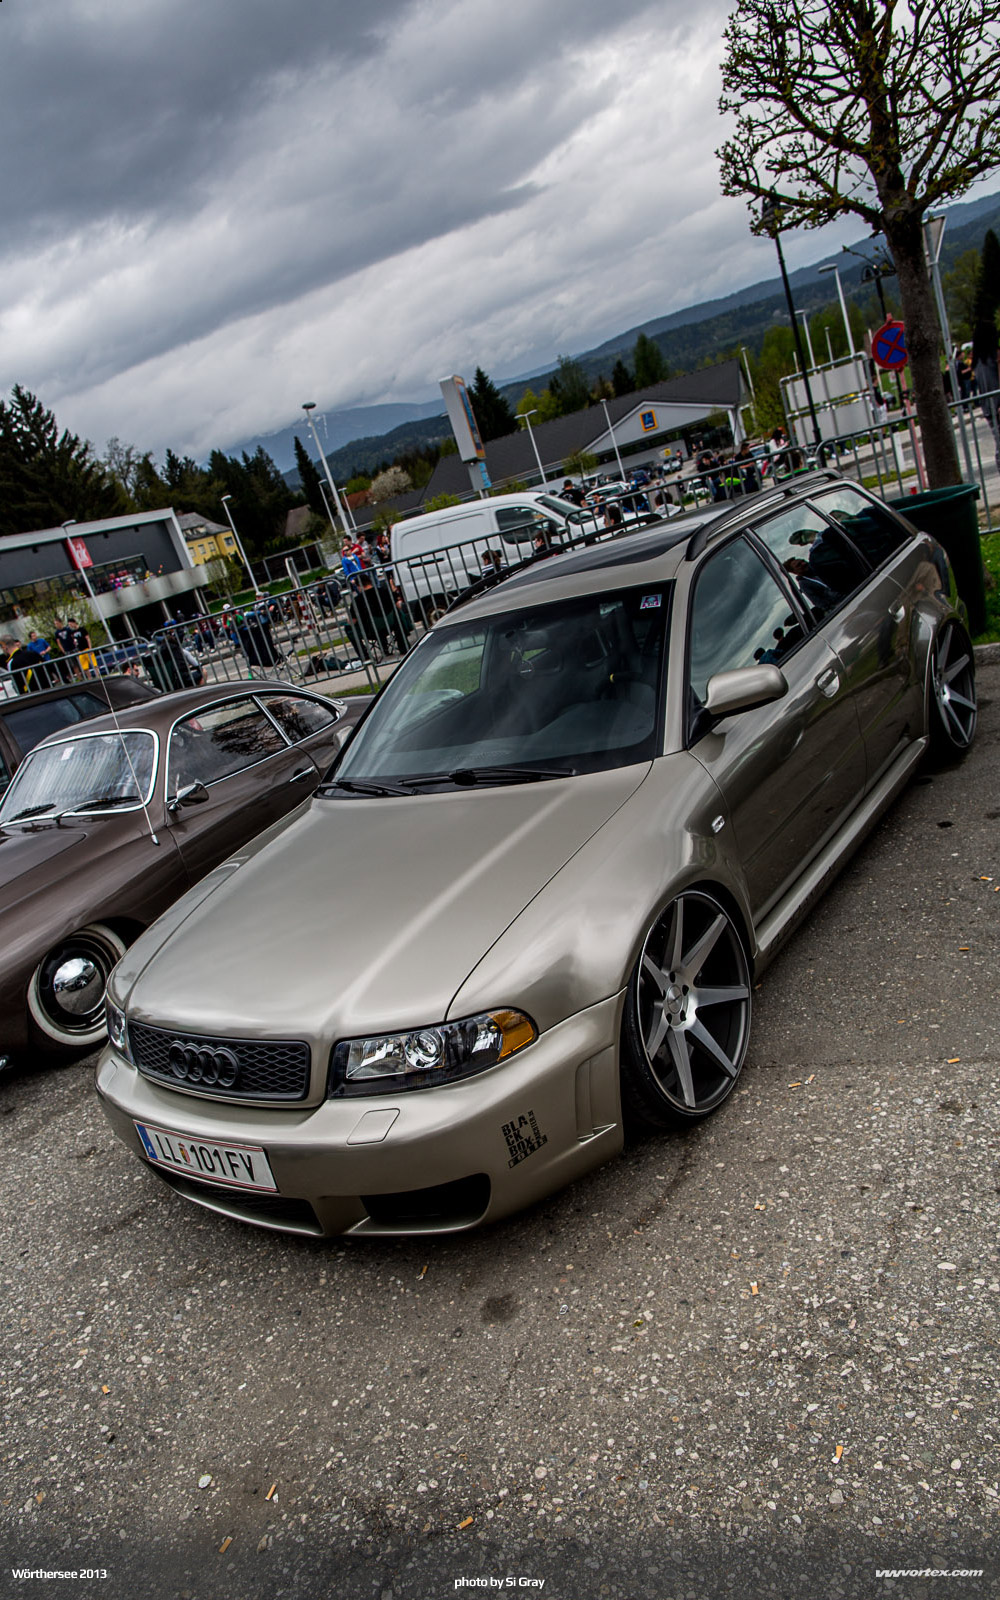 worthersee-2013-gallery-si-gray-002